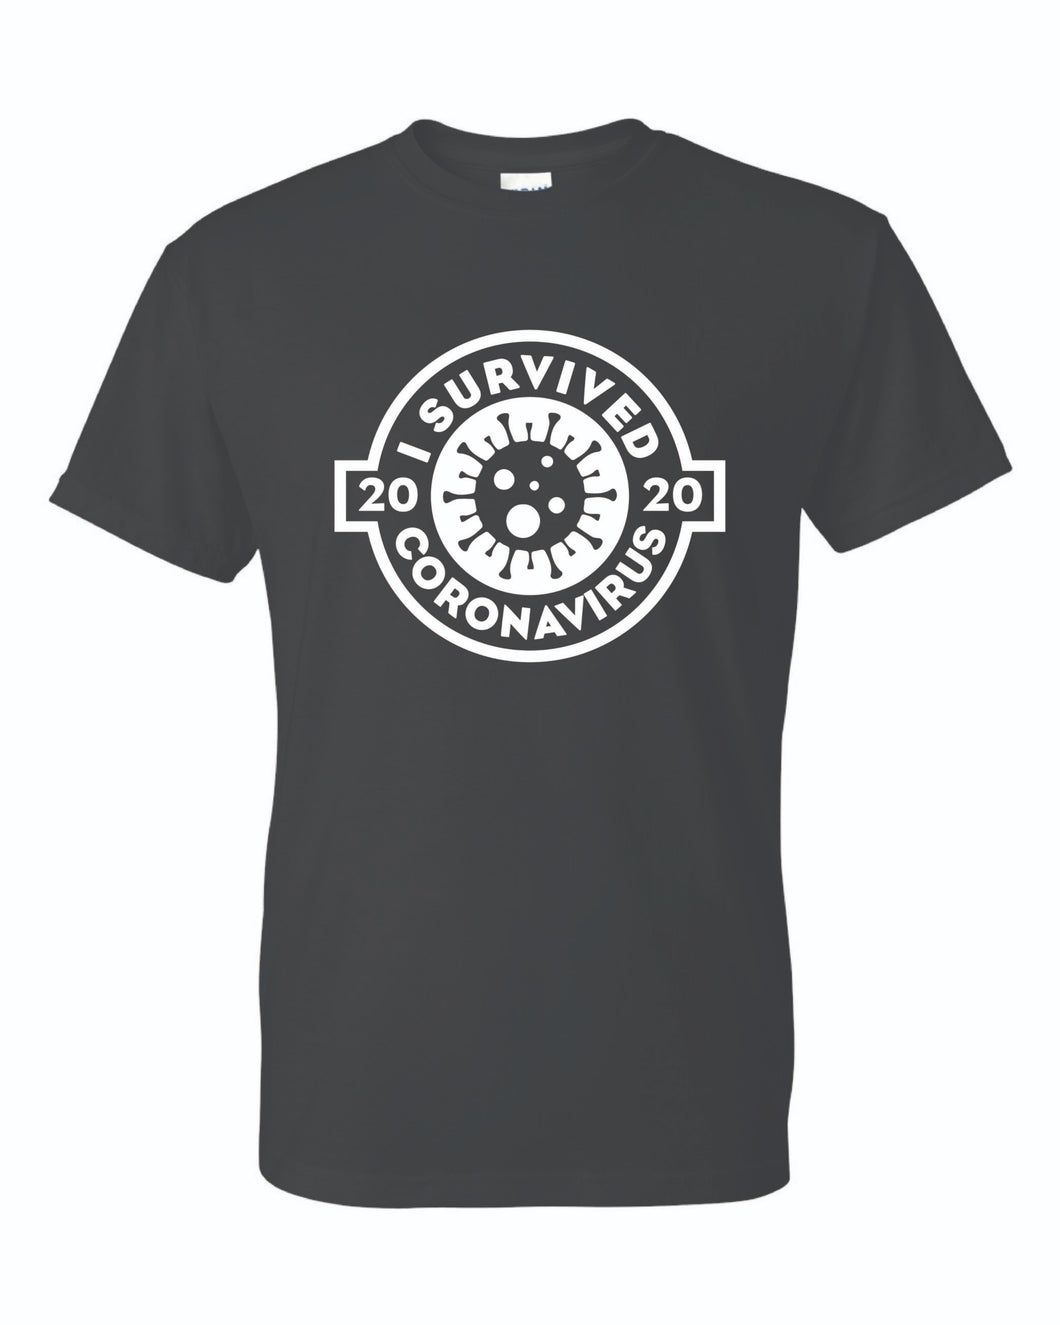 Chopper's - I survived Coronavirus 2020 Short Sleeve T-shirt